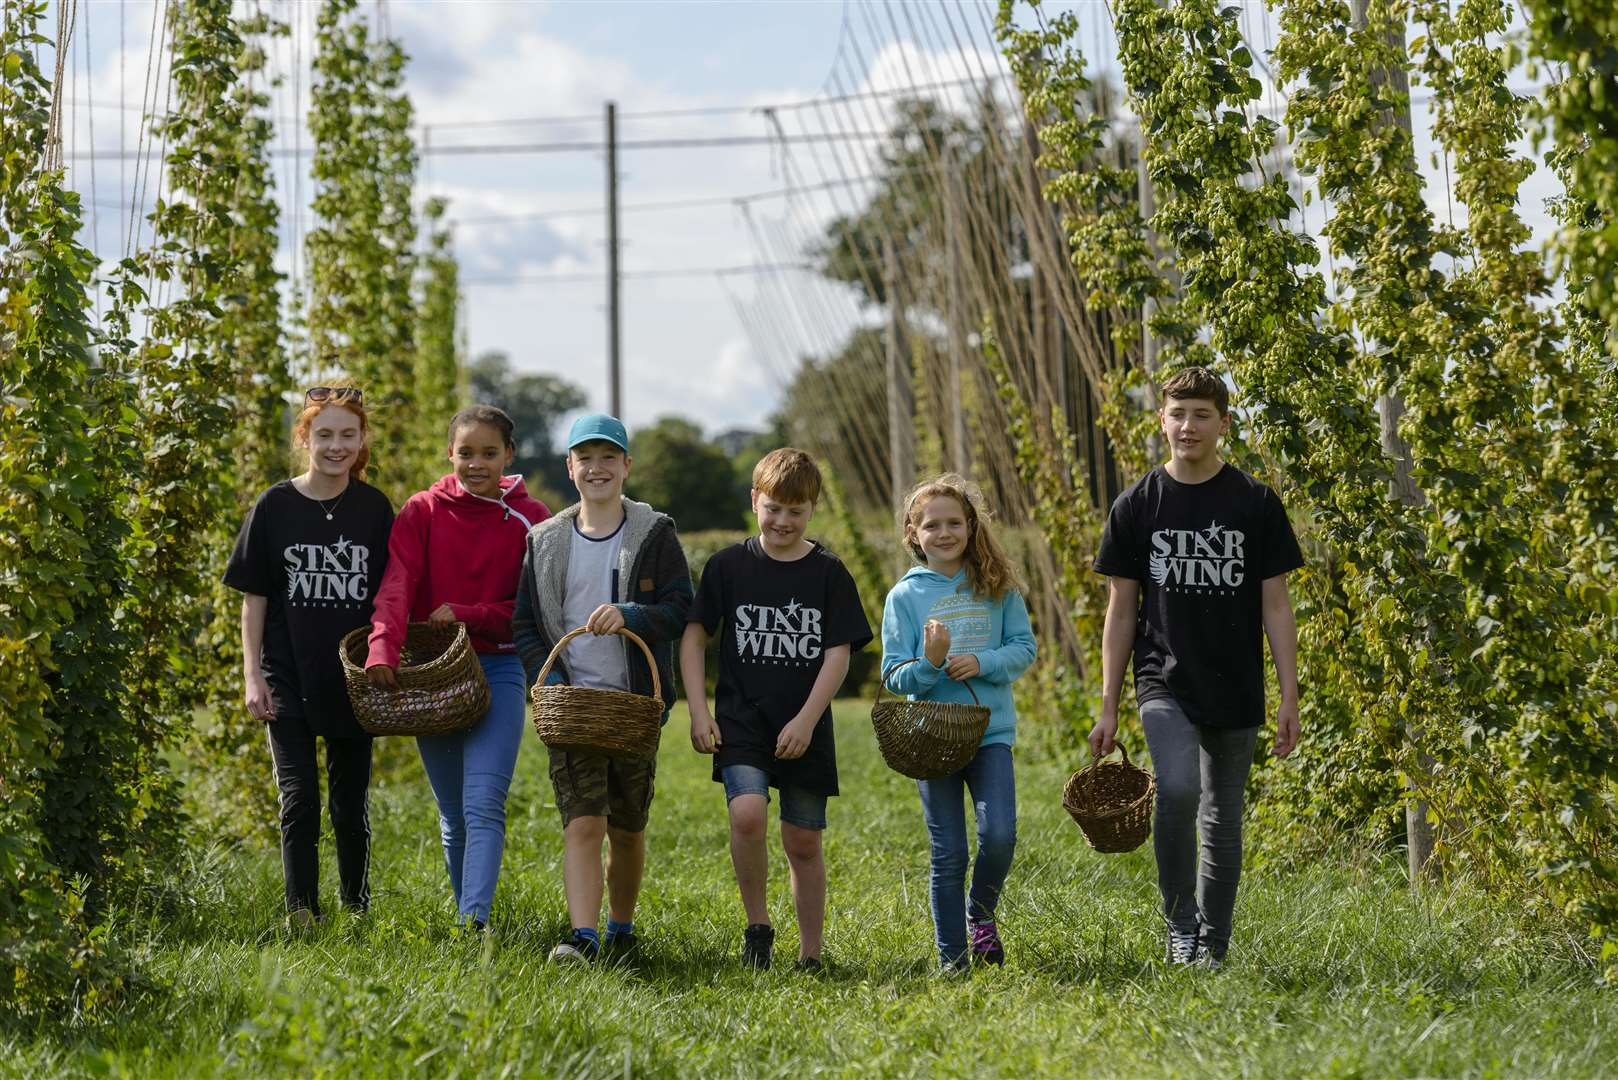 Redgrave, Suffolk. 15 September 2018 ..Hops 'n' Hogs picking at Star Wing Brewery..Picture by Mark Bullimore Photography. (4188524)